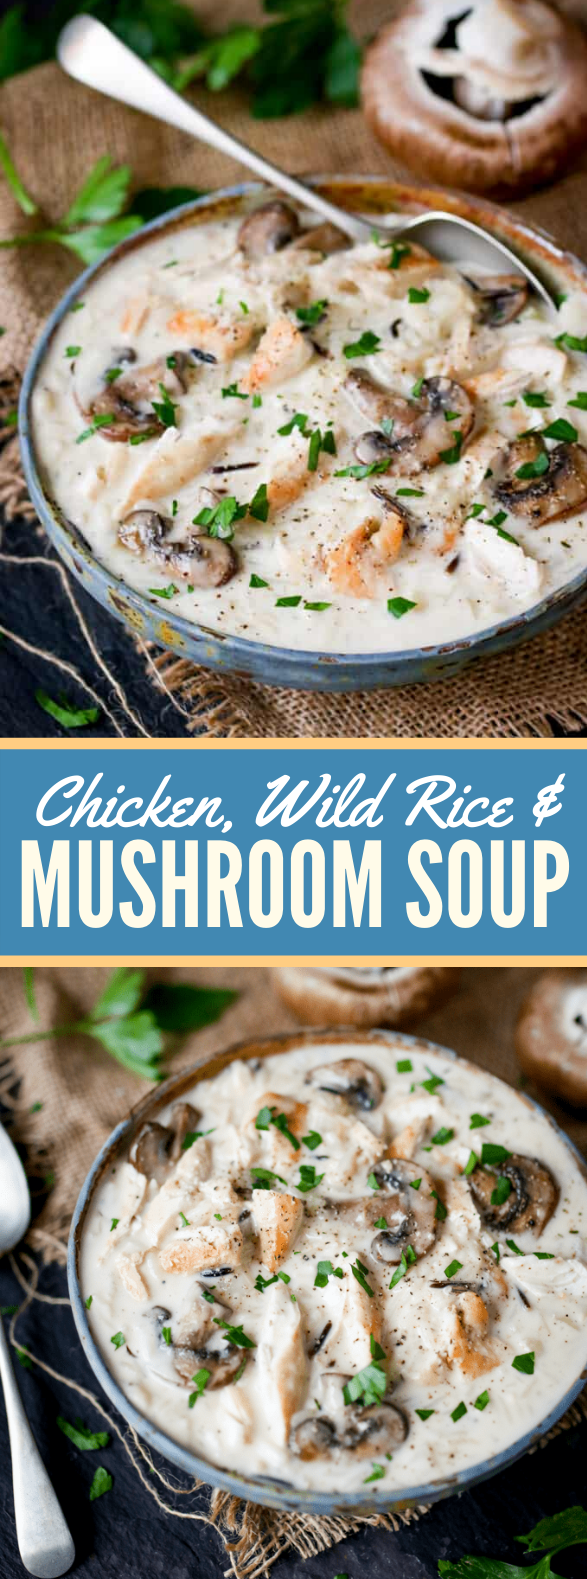 Chicken, Wild Rice & Mushroom Soup #dinner #comfortfood